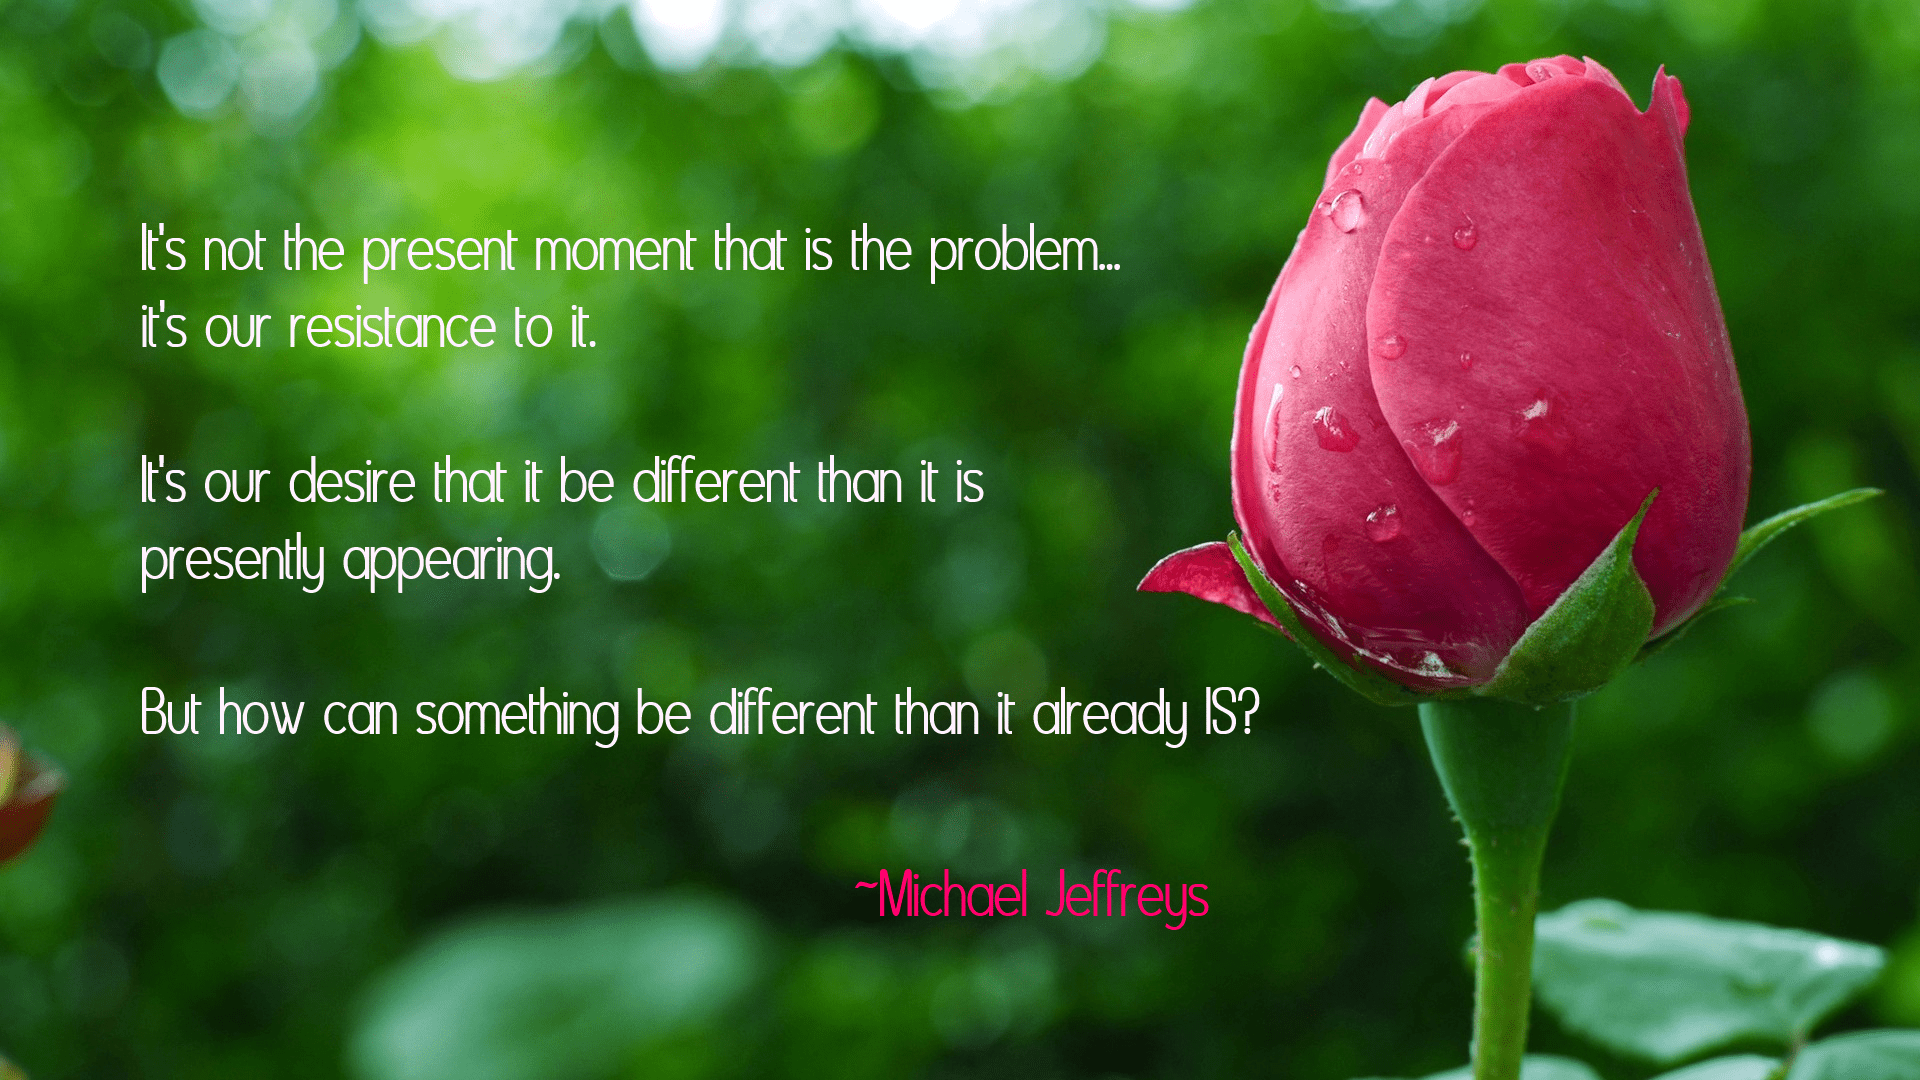 Beautiful Roses Wallpapers With Quotes It S Resistance Not The Present Moment That Causes